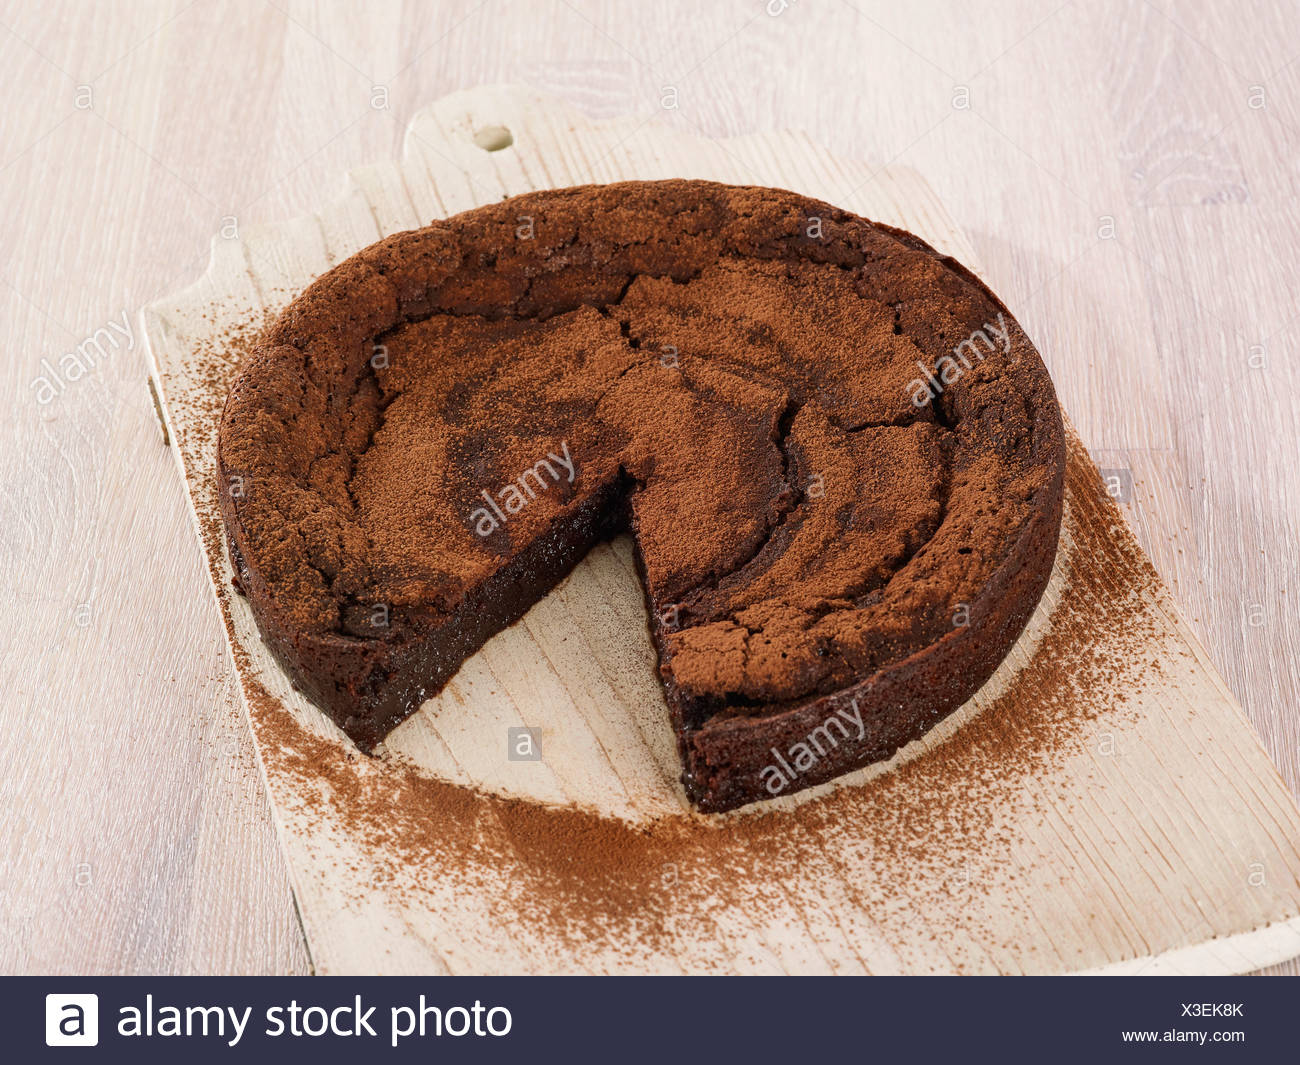 Baked chocolate mousse - Stock Image